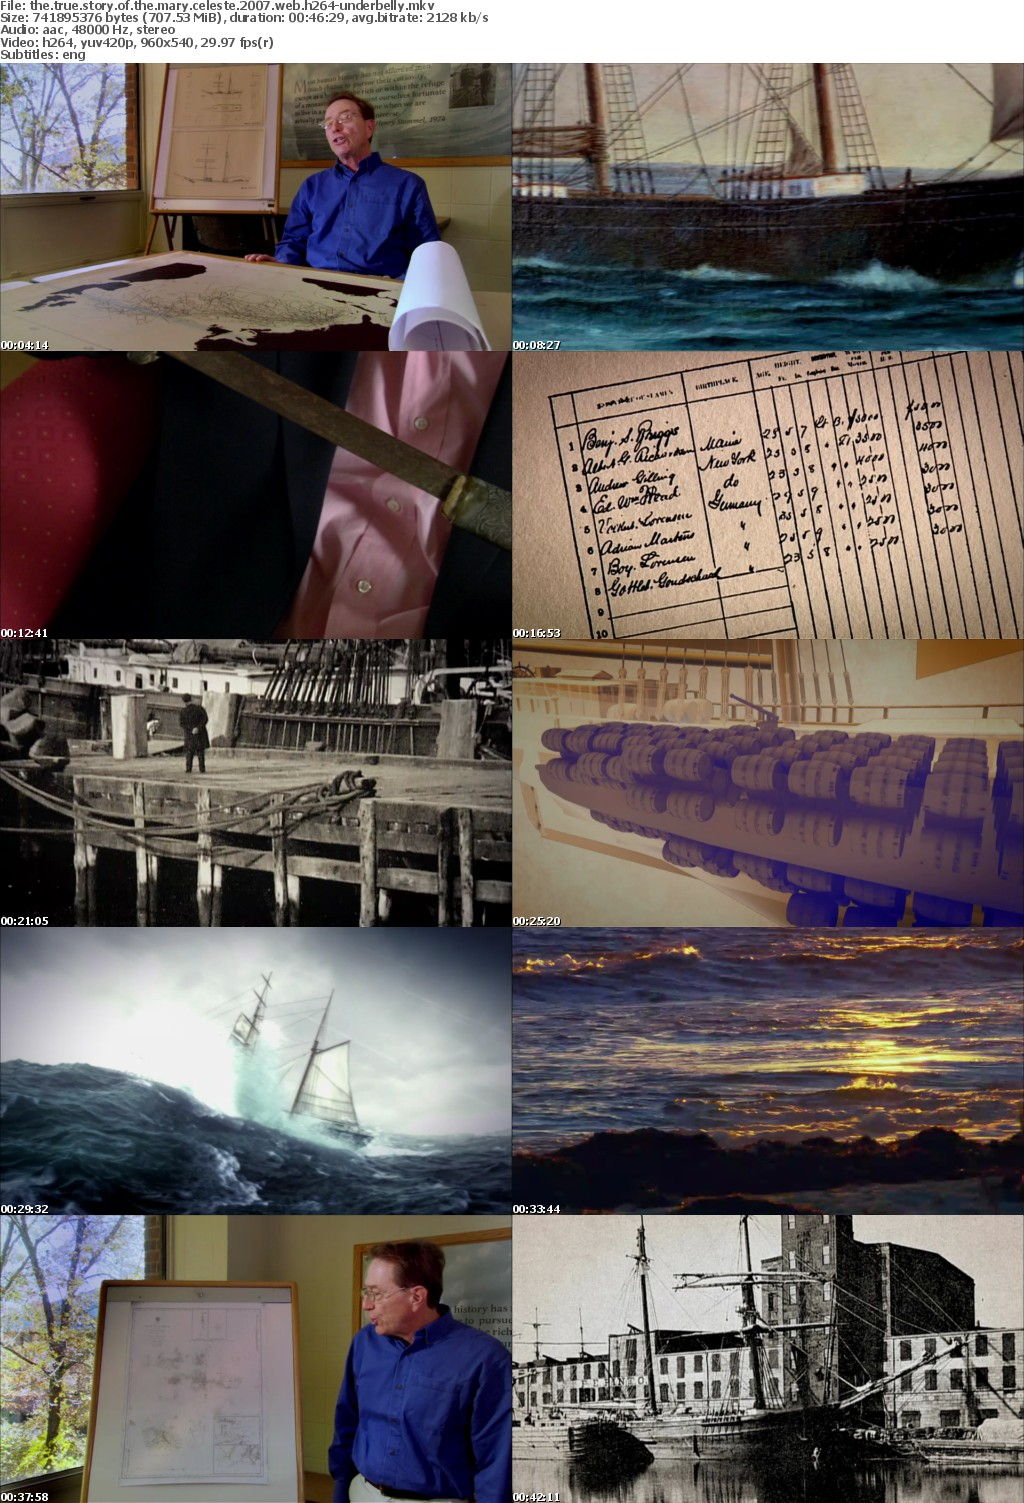 the true story of the mary celeste 2007 web h264-underbelly